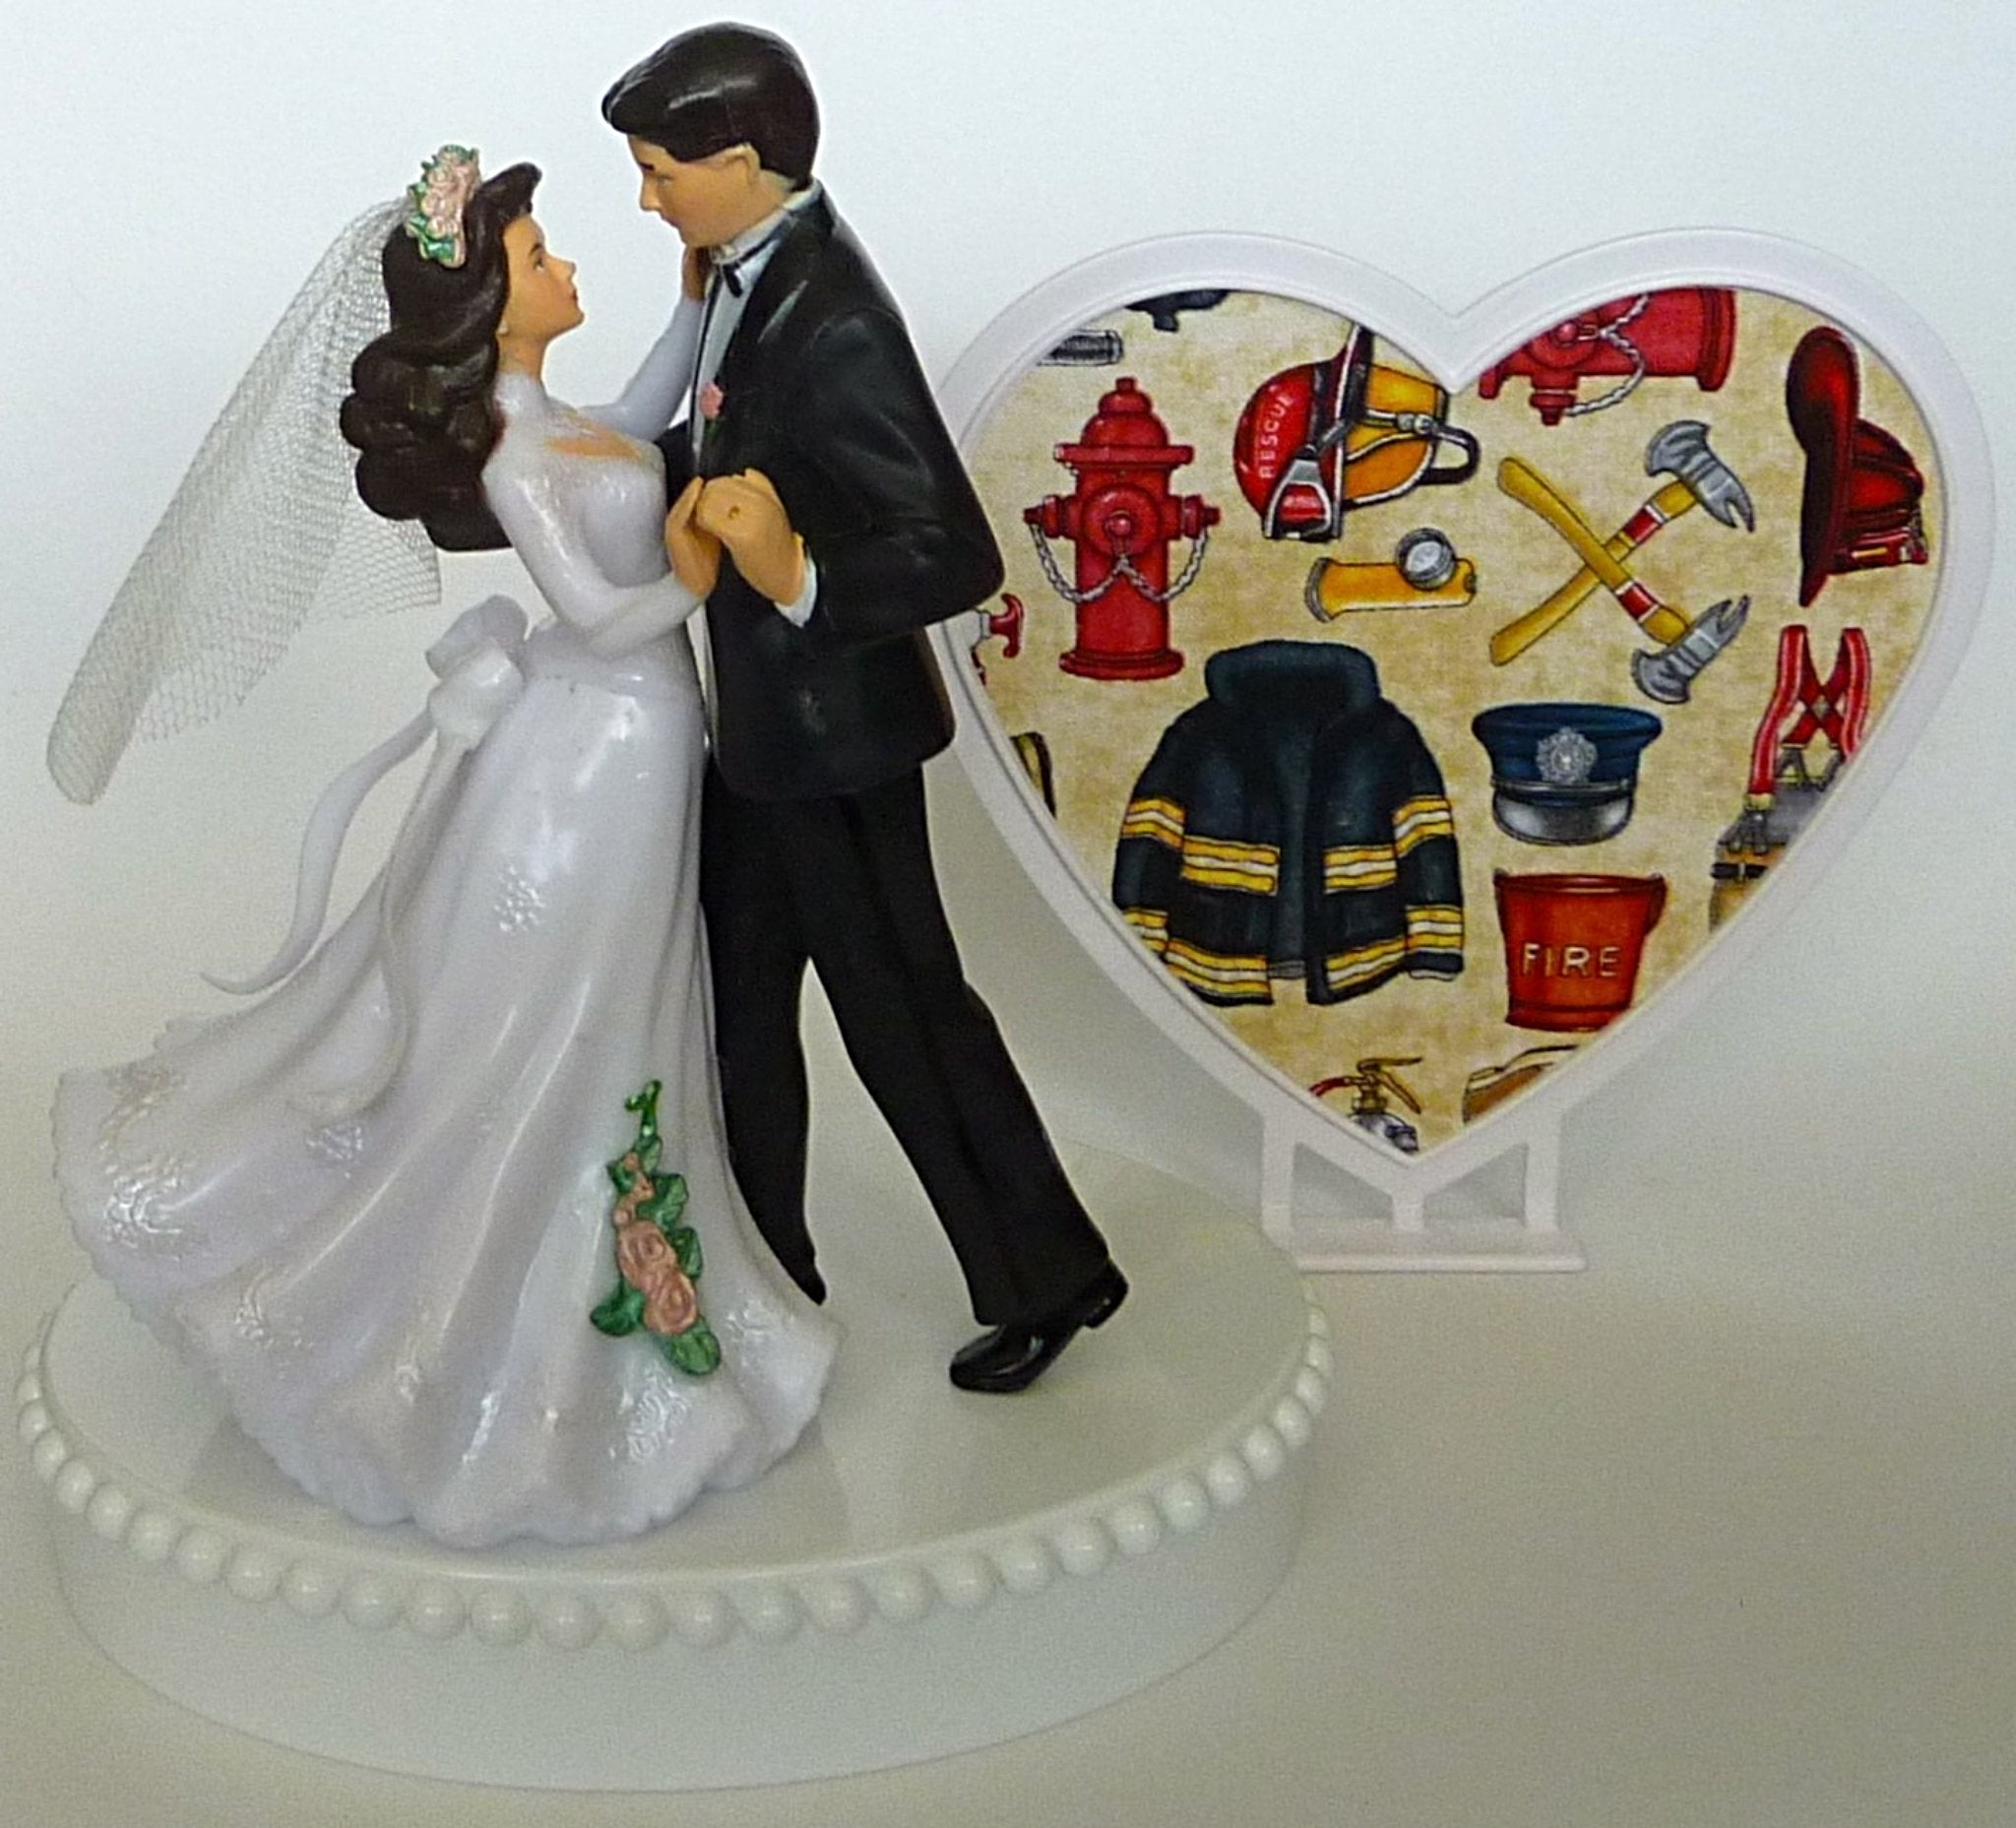 Firefighter cake topper Fun Wedding Things fireman bride groom dancing pretty reception heart